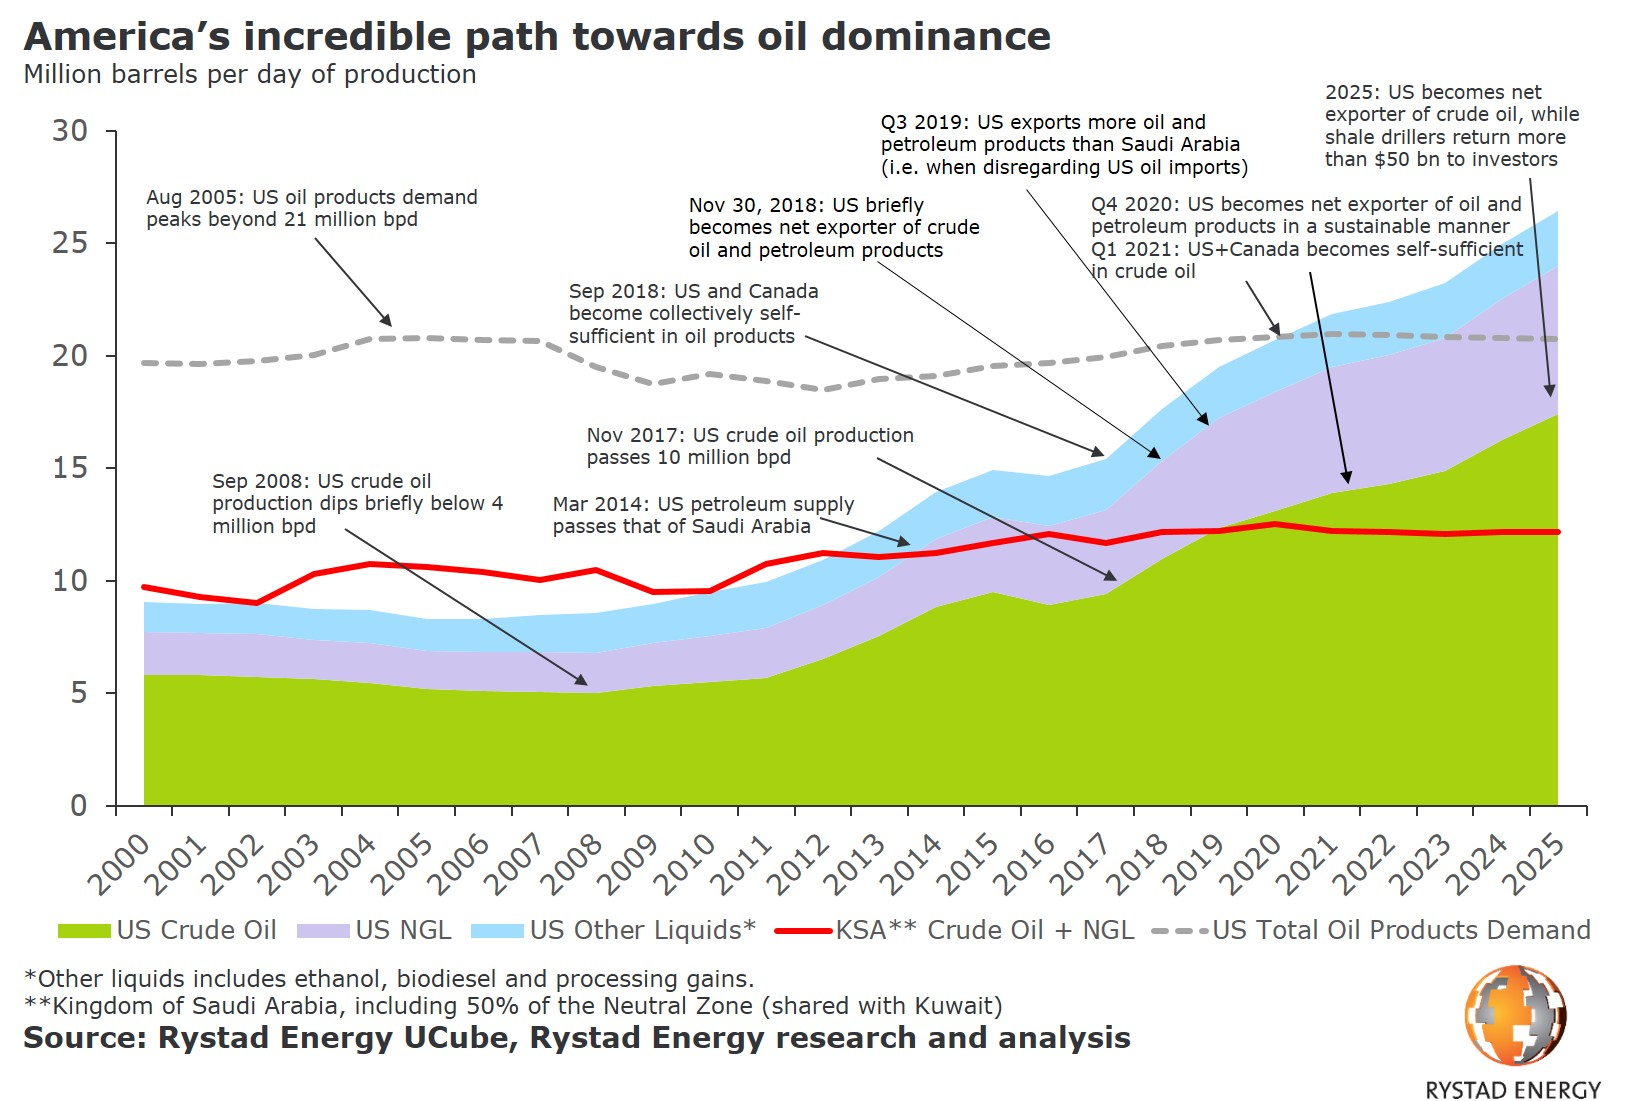 A graph showing America`s incredible path towards oil dominance from 2000 to 2025